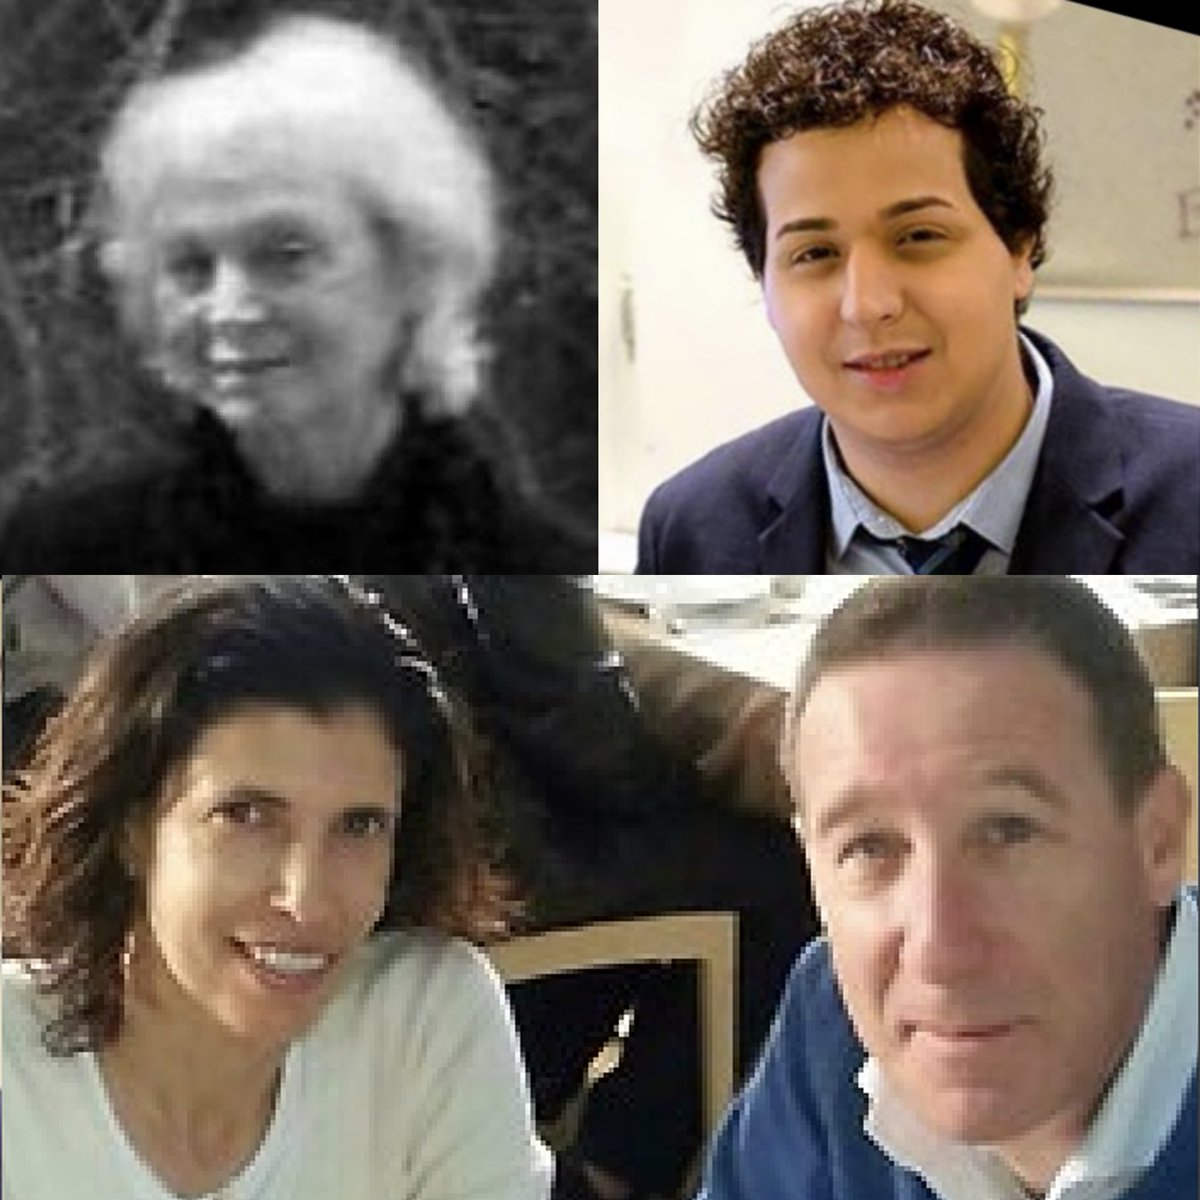 """We remember the four victims of this attack; Dominique Sabrier Z""""L, Alexandre Strens Z""""L, Miriam Riva Z""""L and Emmanuel Riva Z""""L. May their memories be a blessing"""